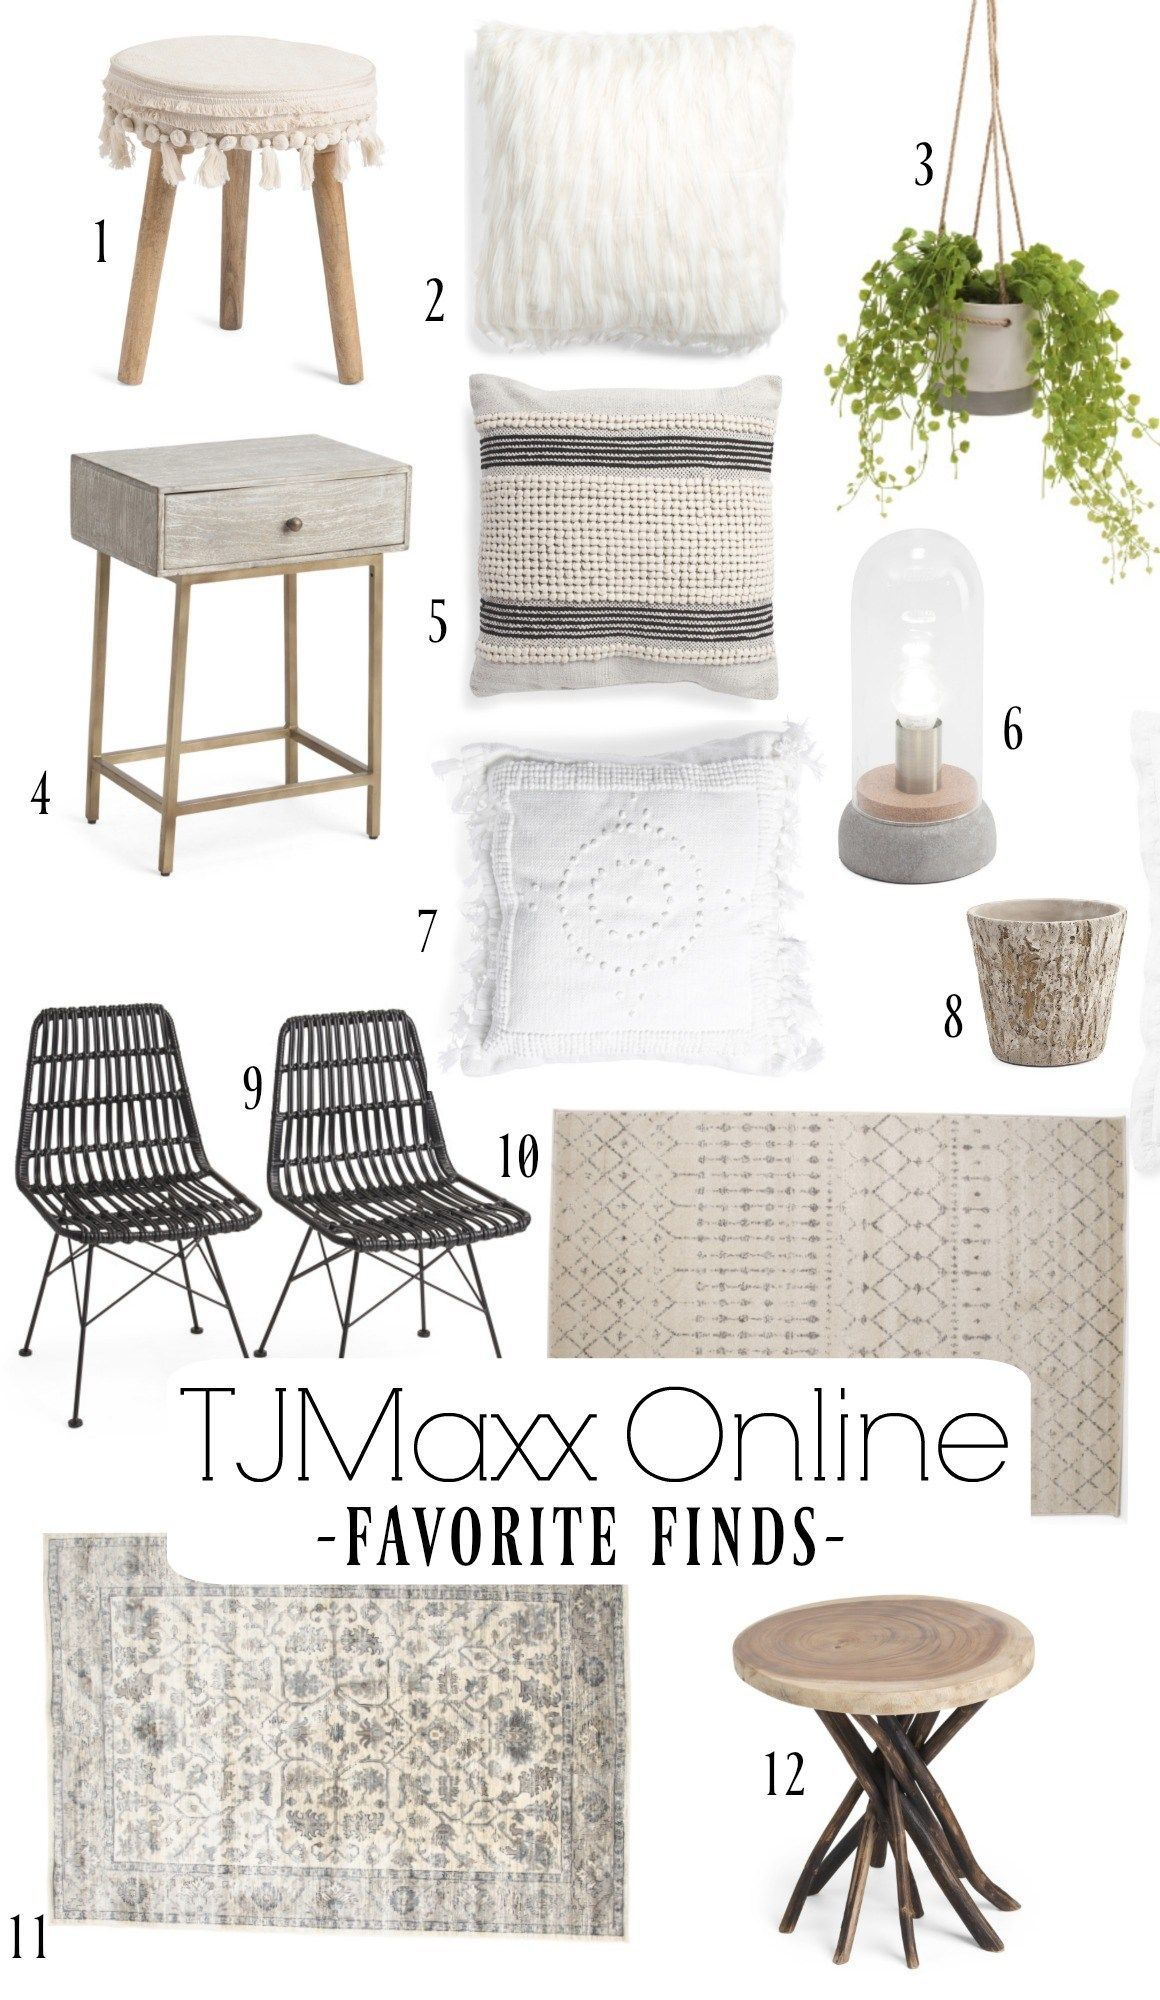 Amazing TJMaxx Home Decor Accessories These Are My Favorite Online Finds From Nesting With Grace Nestingwithgrace Homedecorideas Tjmaxx